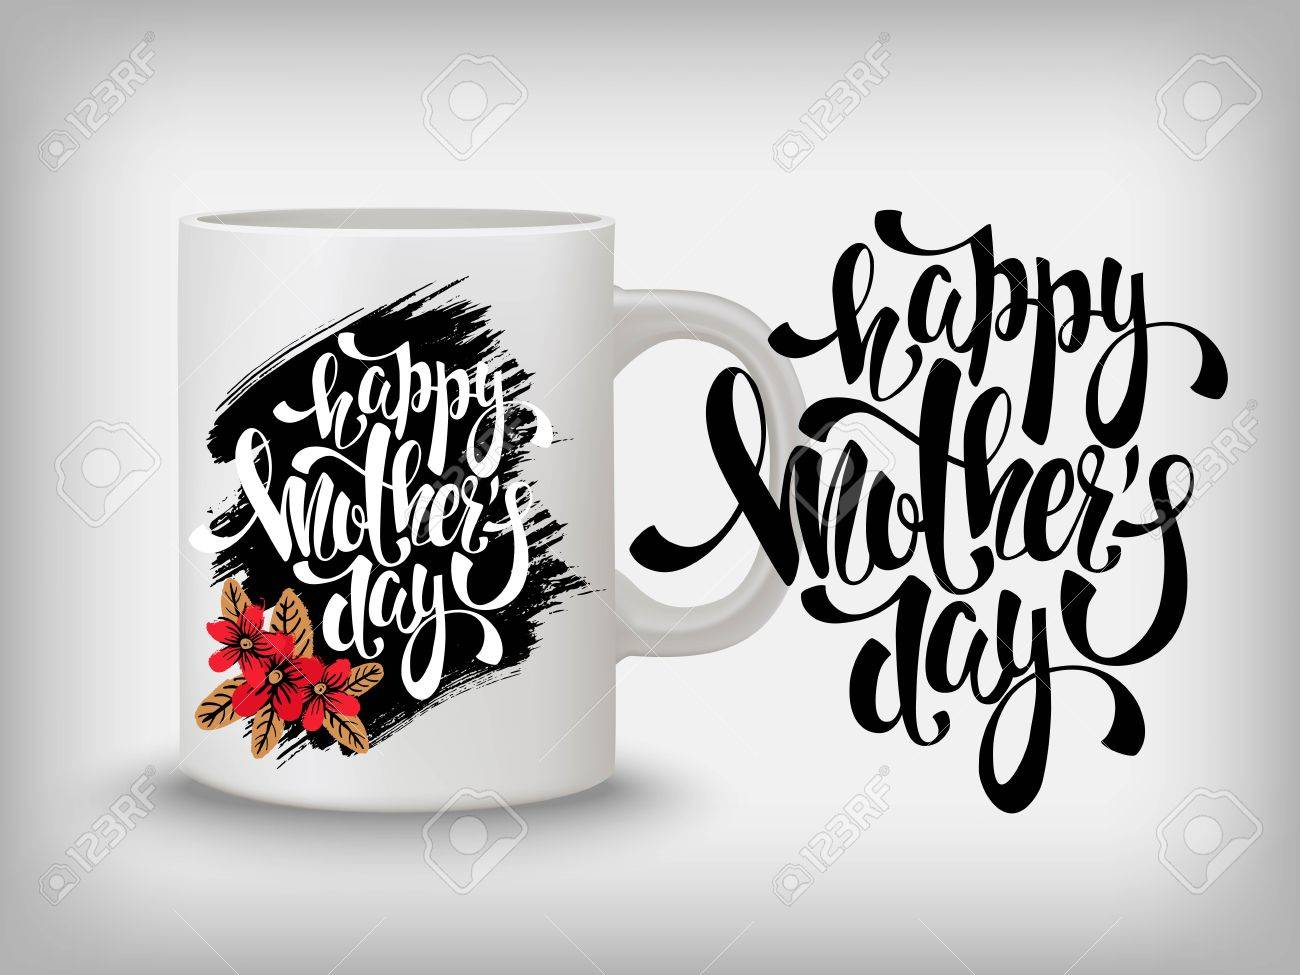 Creative background with slogan for card, invitation, gift for mothers. - 55155906